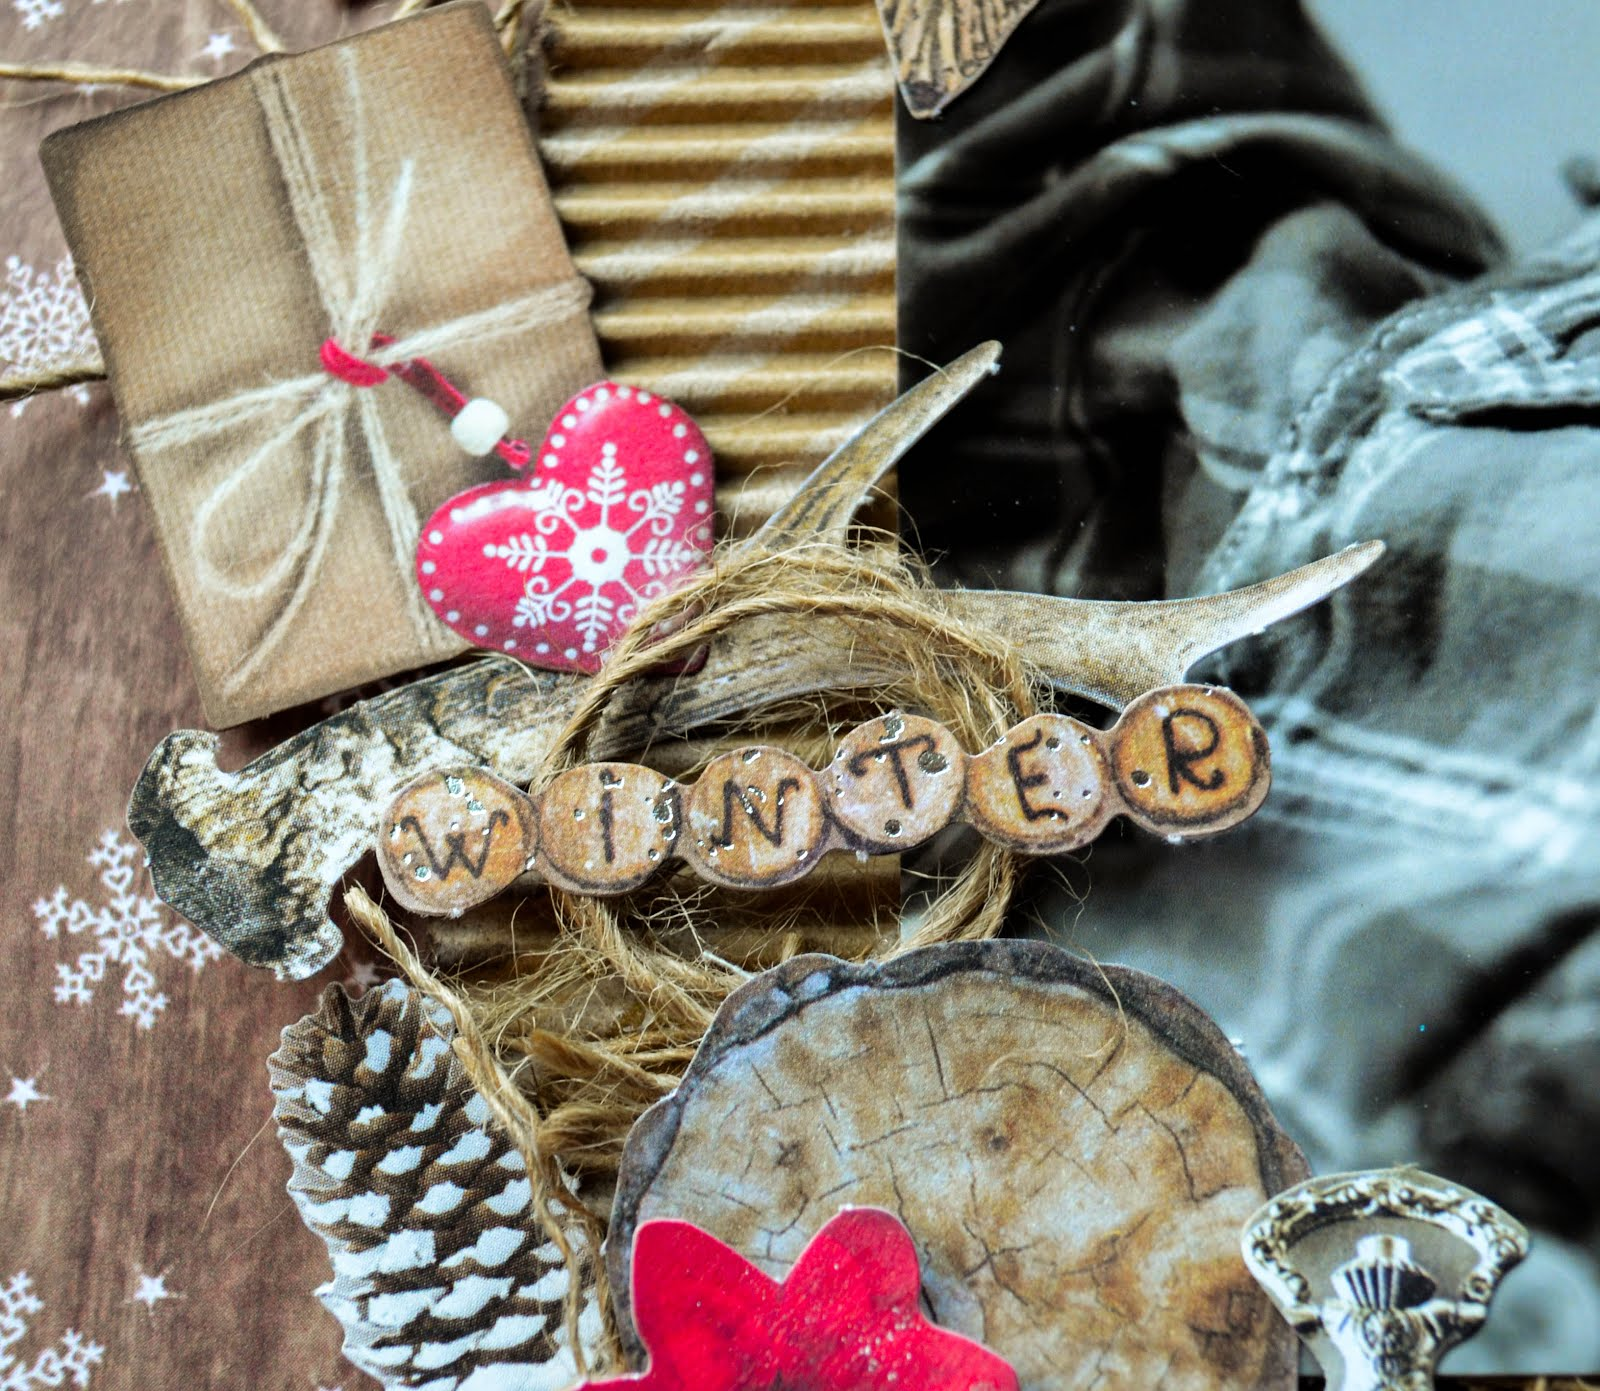 Rustic winter holiday Christmas scrapbook layout on woodgrain background, corrugated cardboard, burlap, jute, plaid print, and snowflakes with die cuts including pinecones, wrapped packages, tags, owl, wood, clock timepiece, birdhouse, flowers, and ice skates